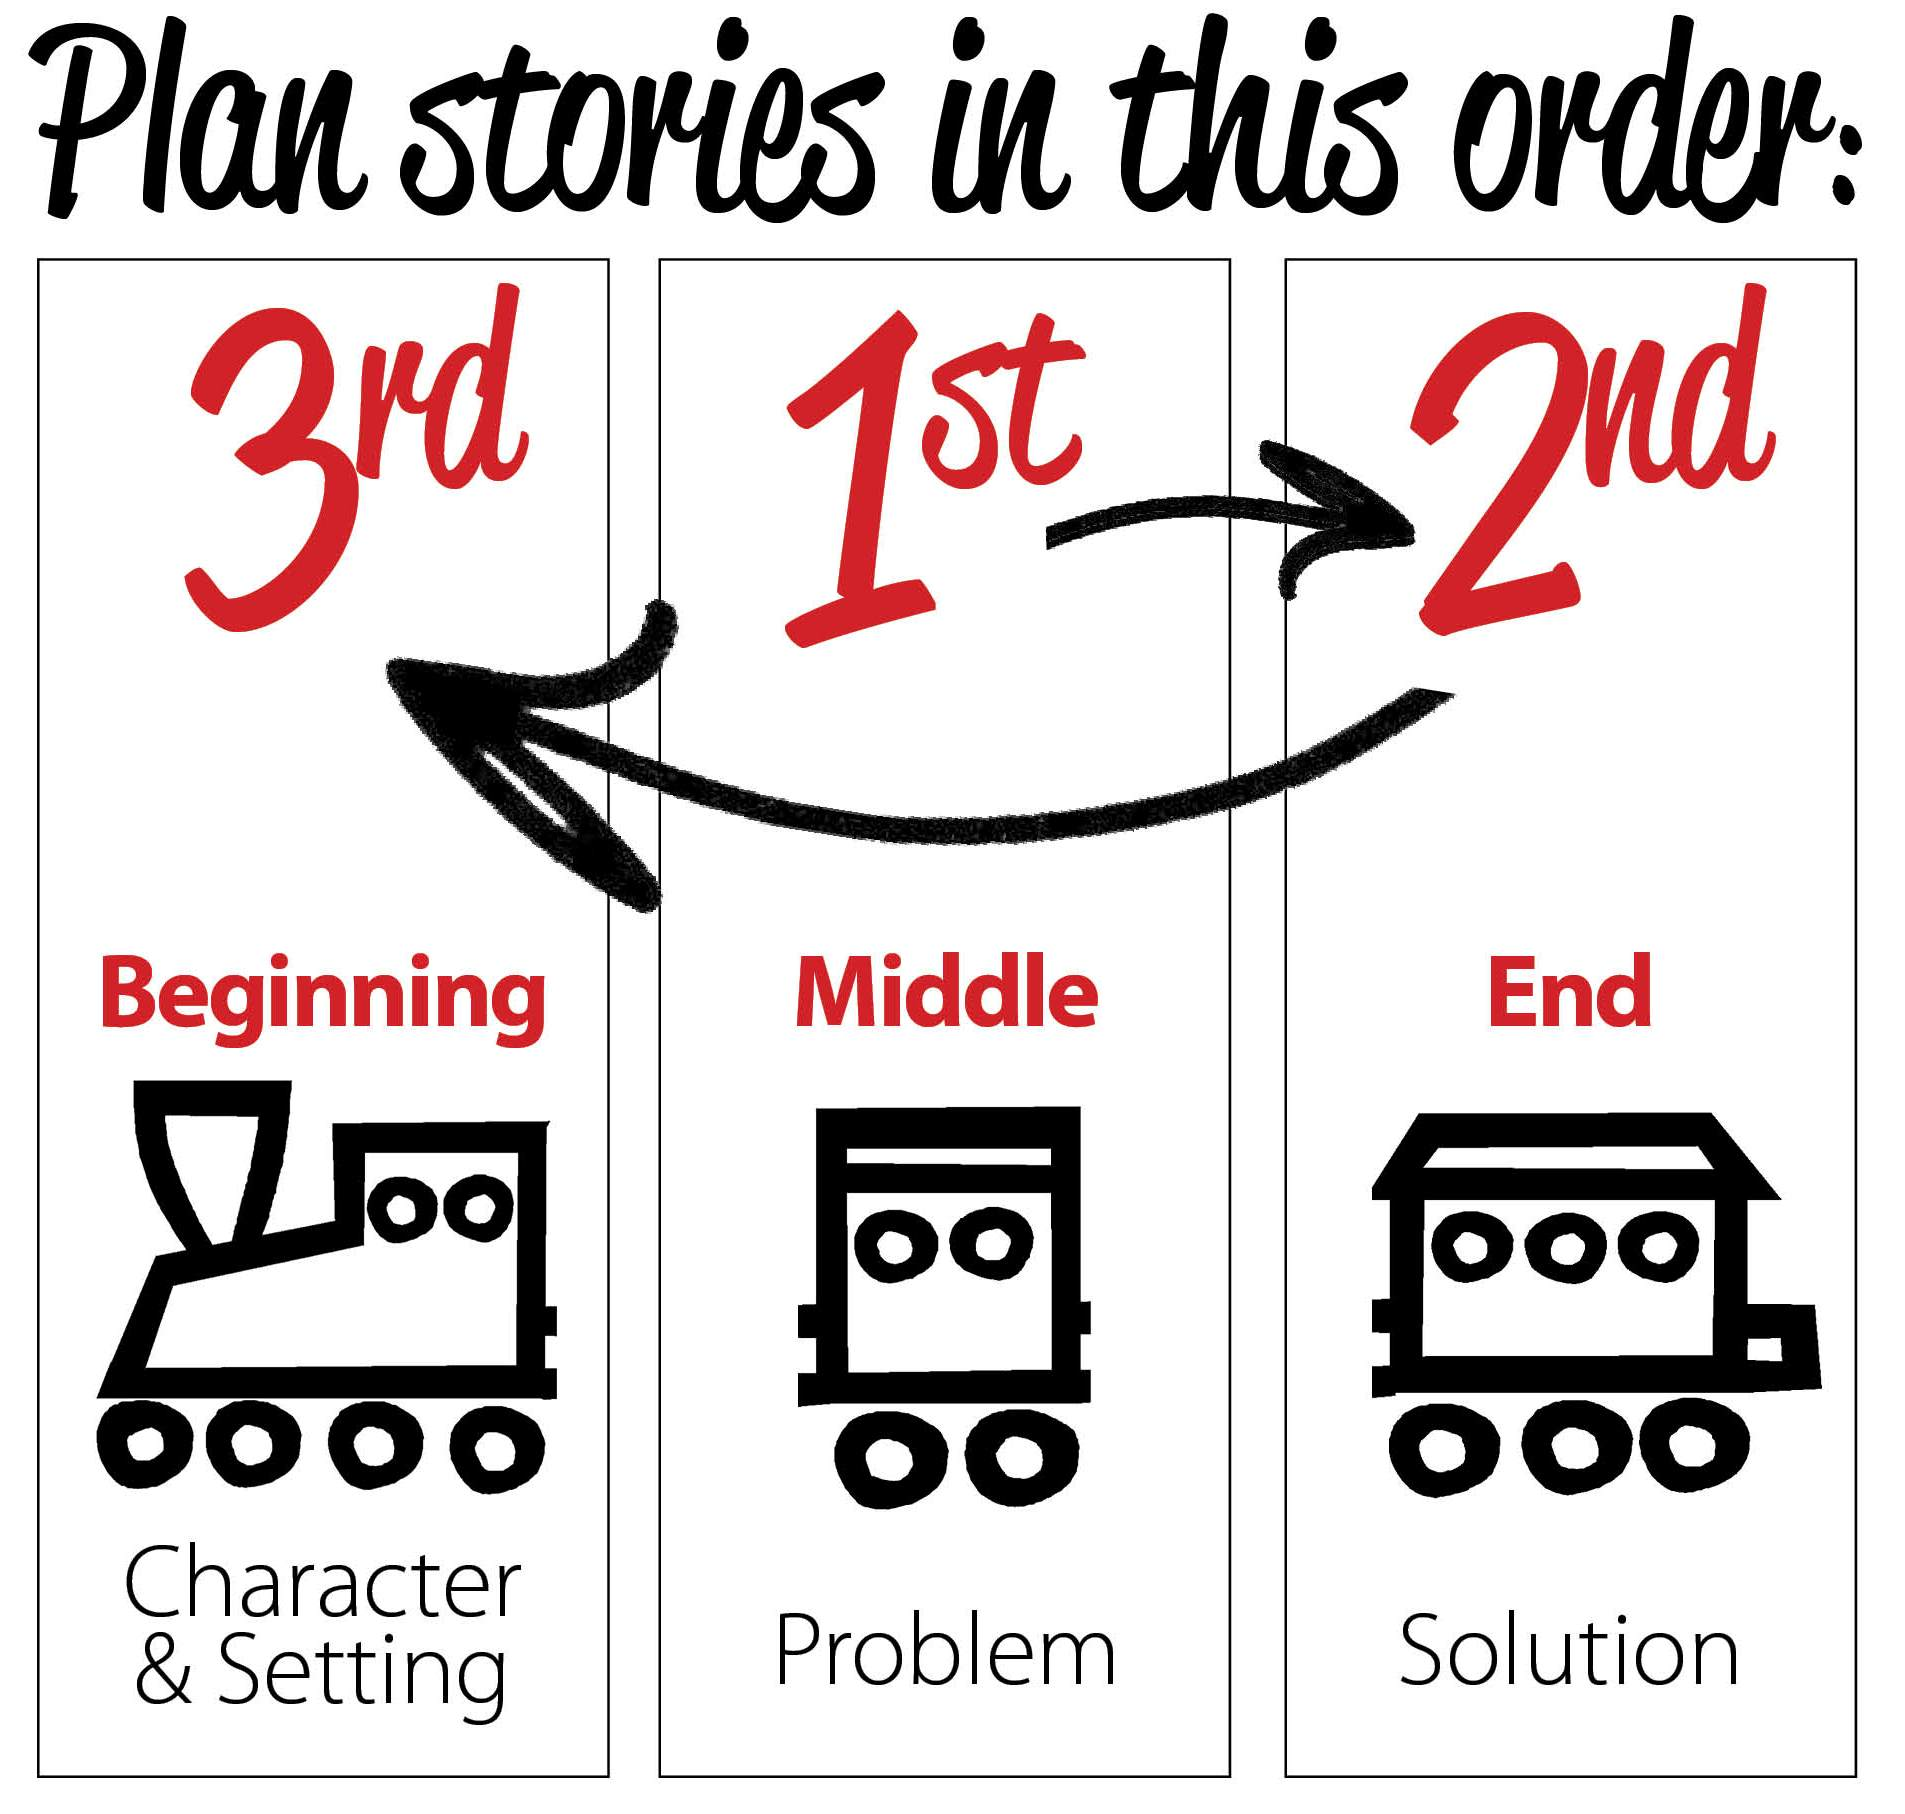 Plan Stories in This Order